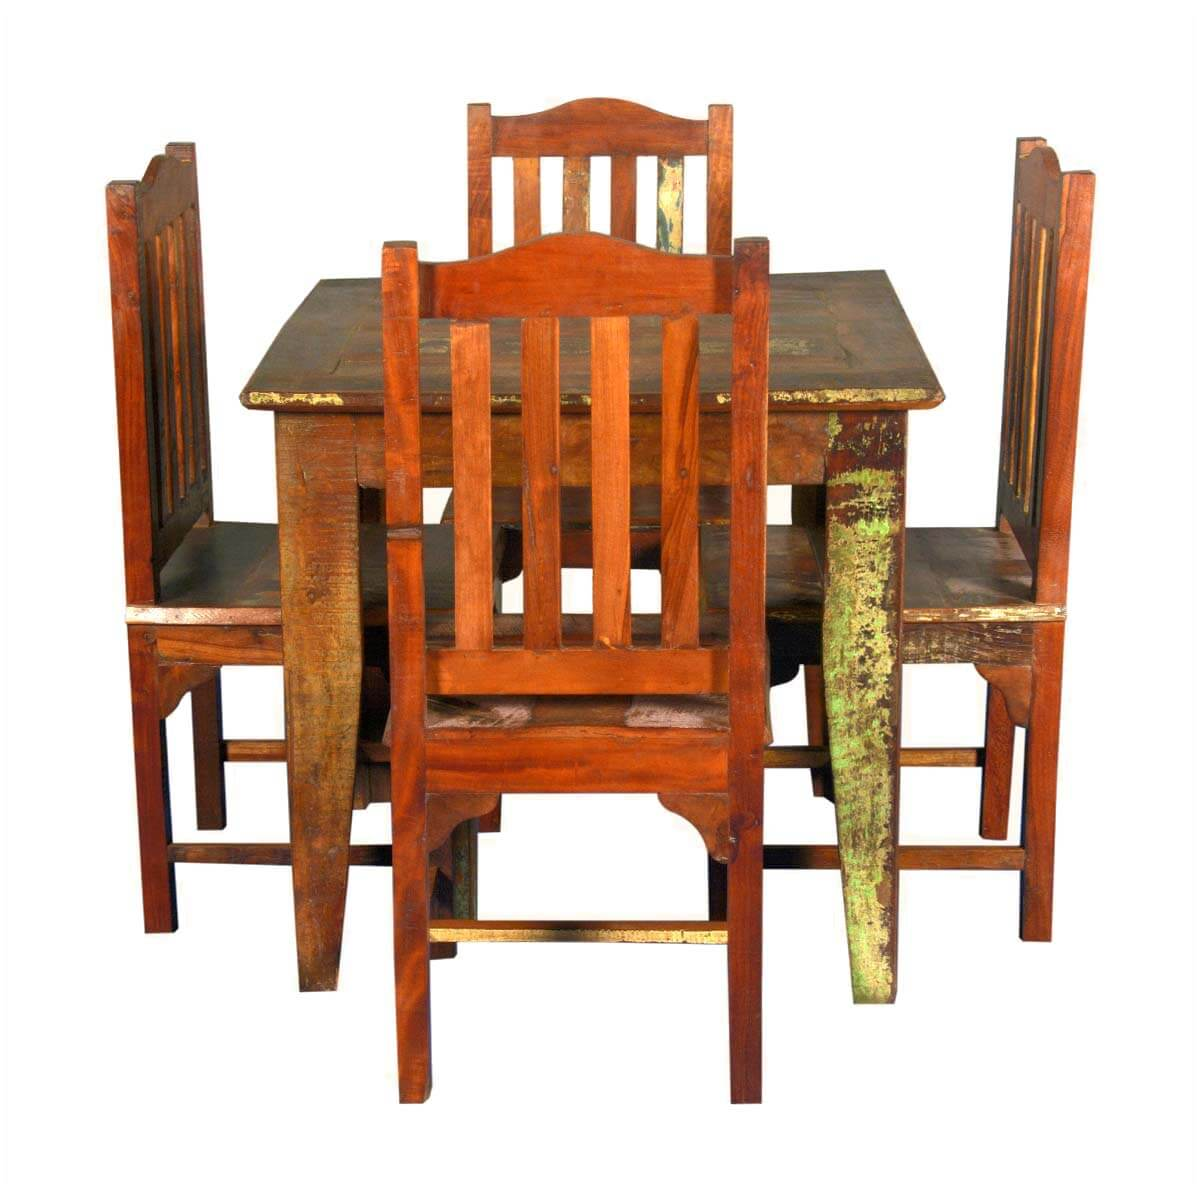 Norwalk Reclaimed Wood Square Dining Table With 4 Chairs Set